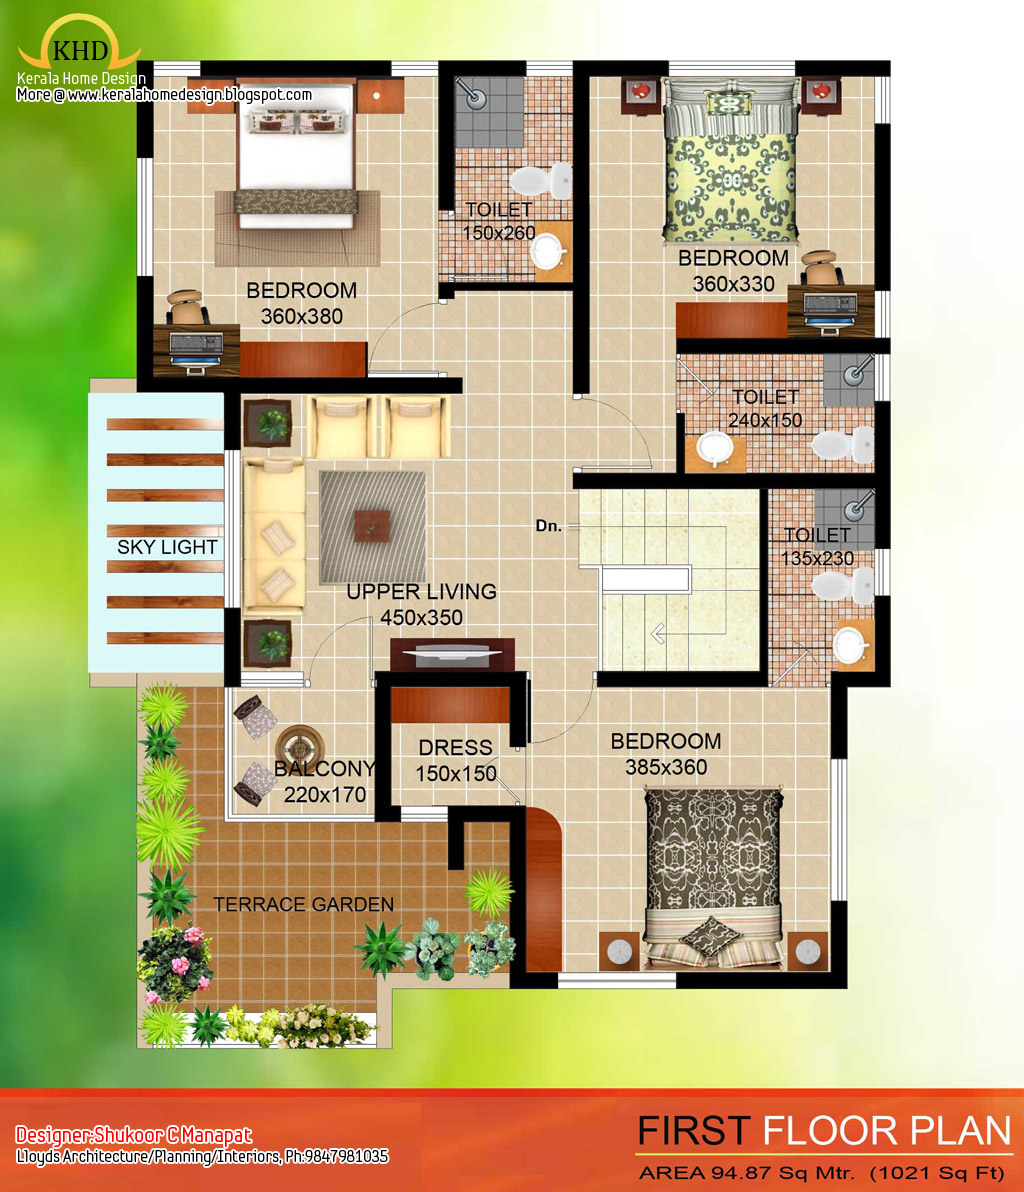 2035 sq ft 4 bedroom contemporary villa elevation and Villa floor plans india